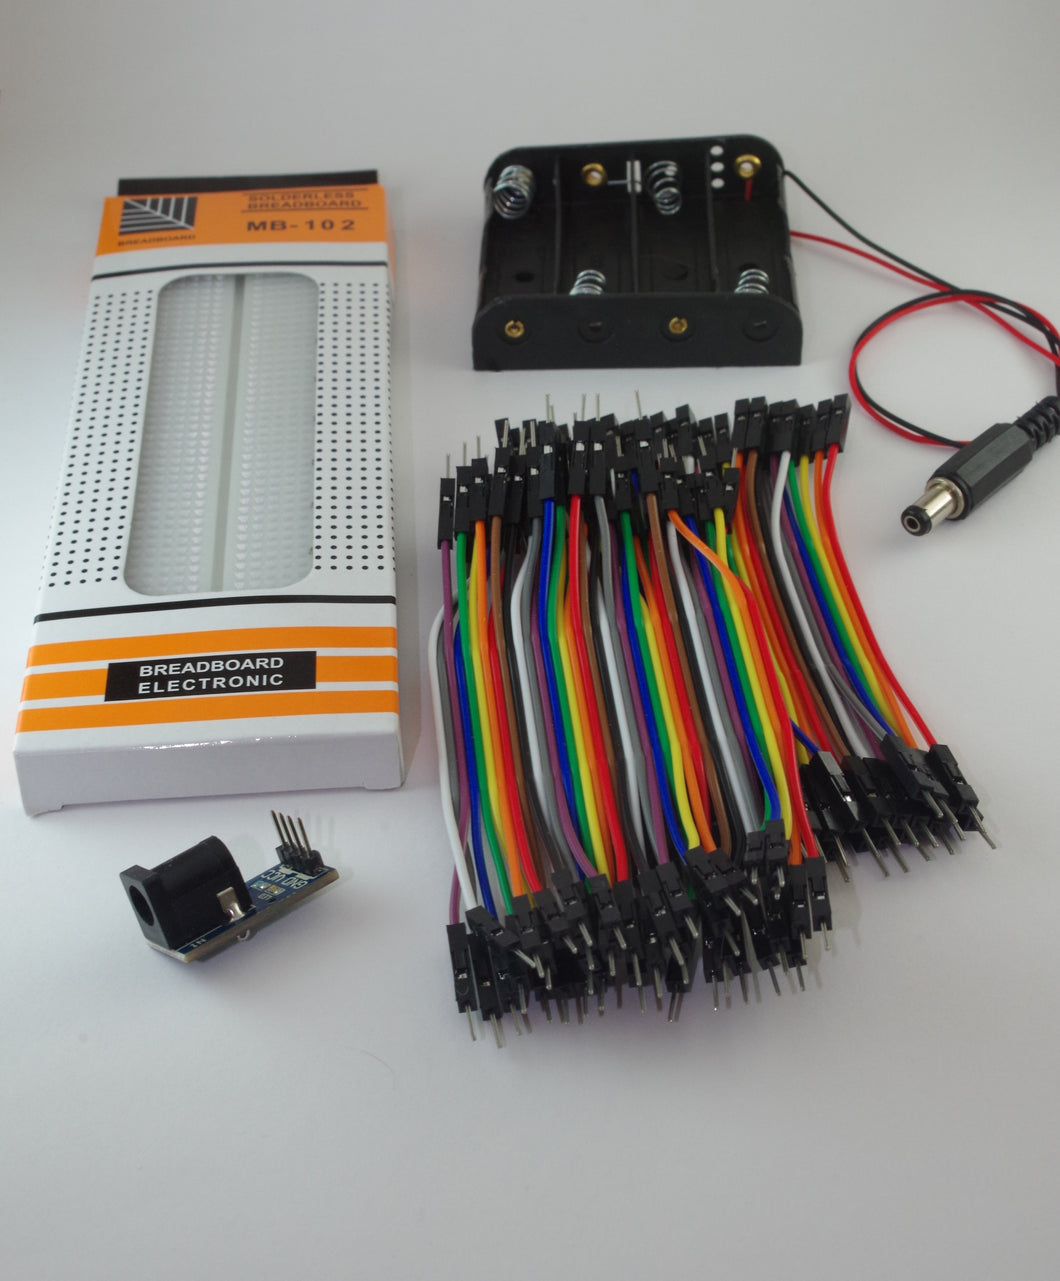 Kit introductorio de electrónica - Neurobots